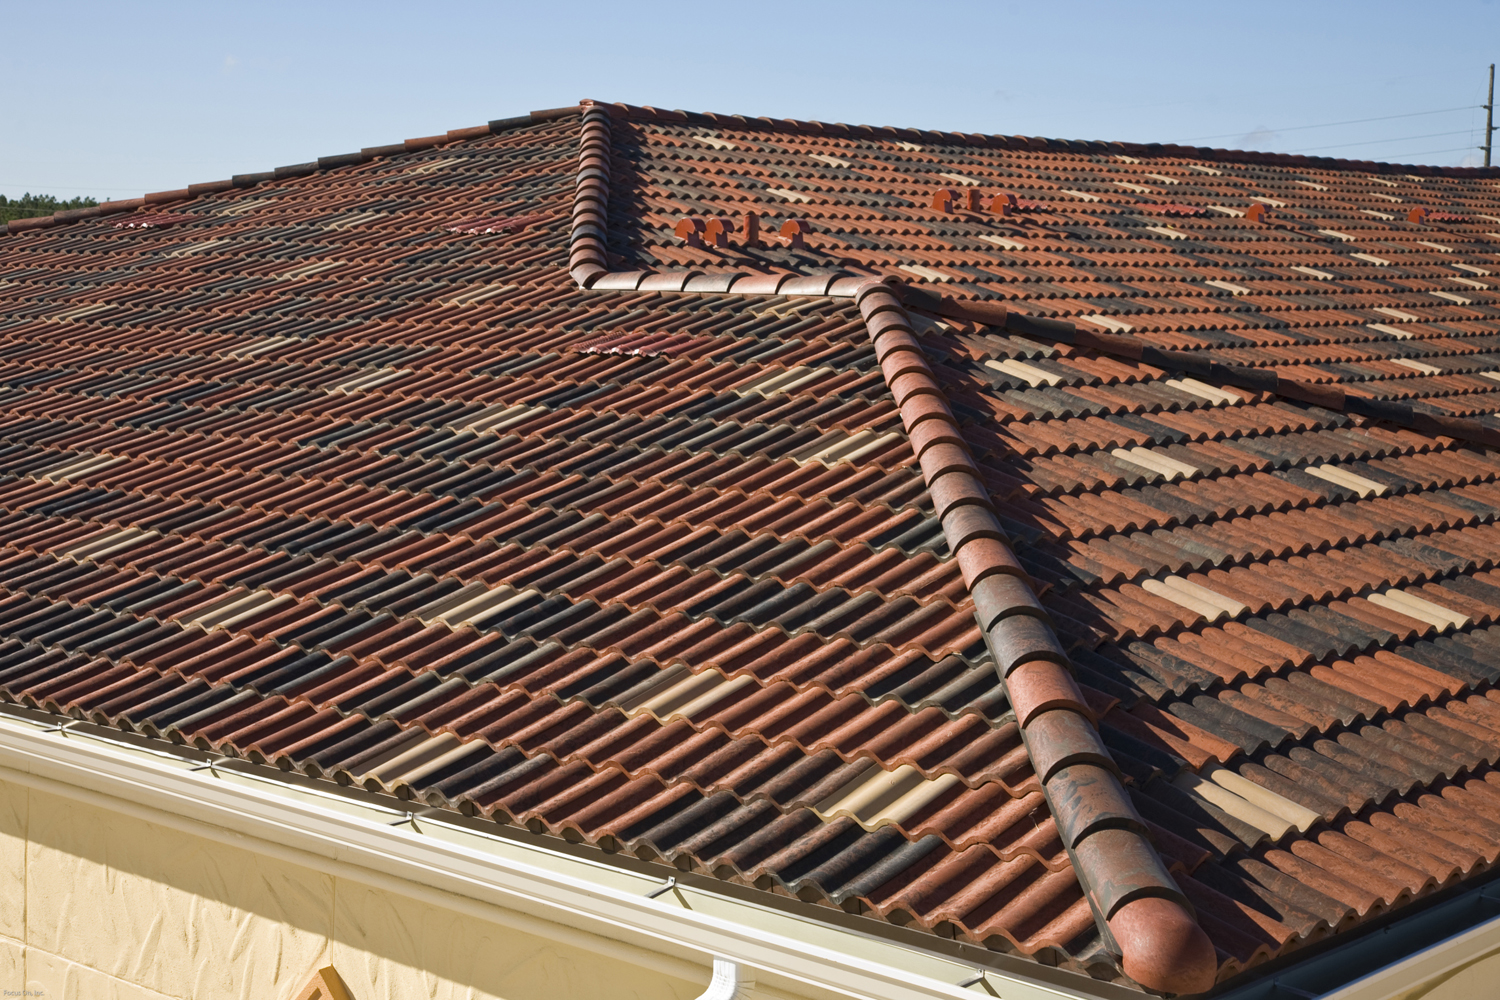 new metamaterial can cool your roof using zero energy